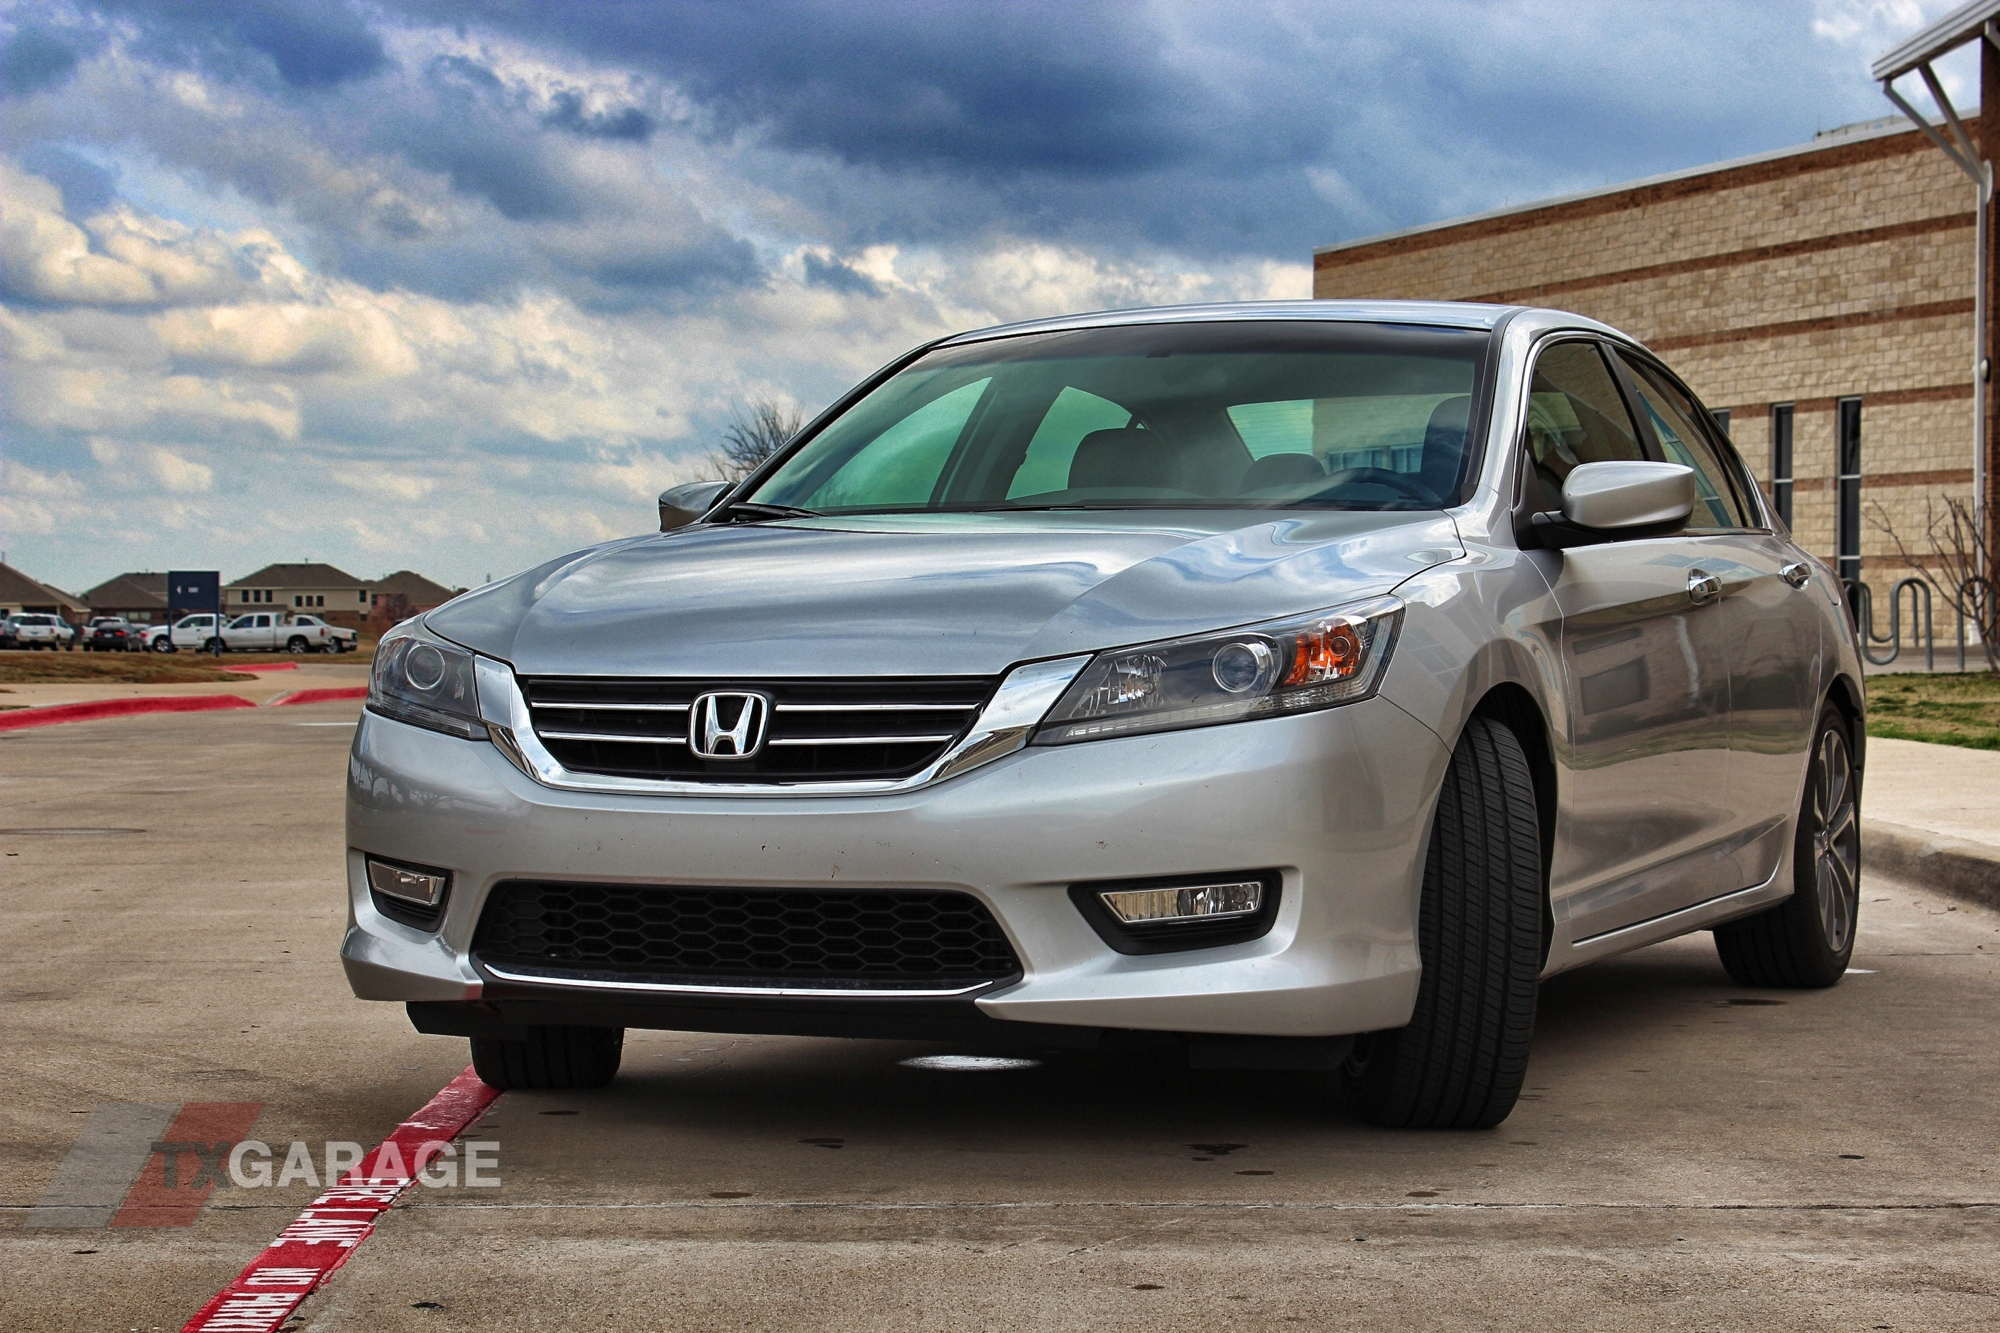 2013 honda accord 30 background wallpaper for Honda accord used 2013